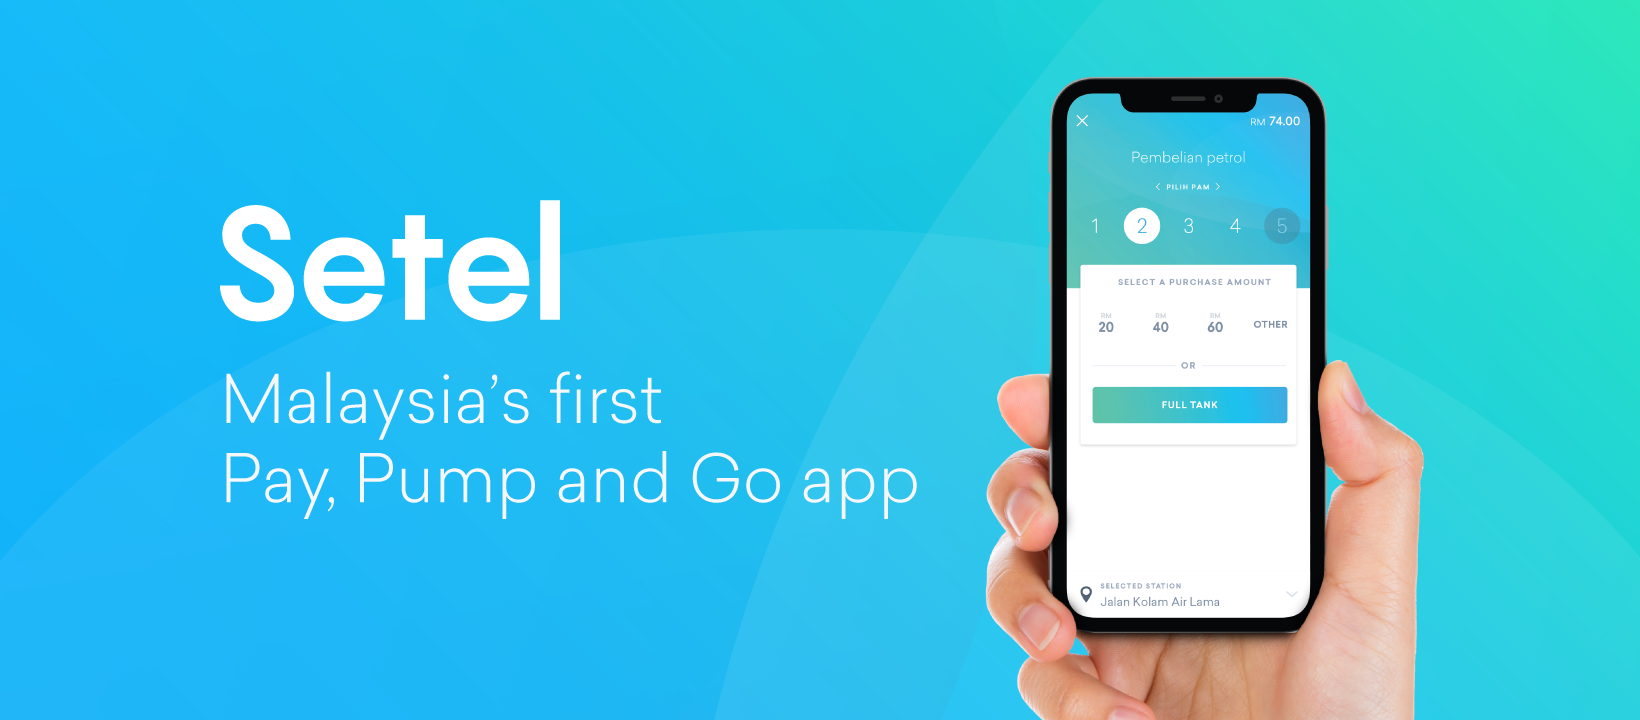 Beat the queue with Setel, Malaysia's first Pay, Pump and Go app